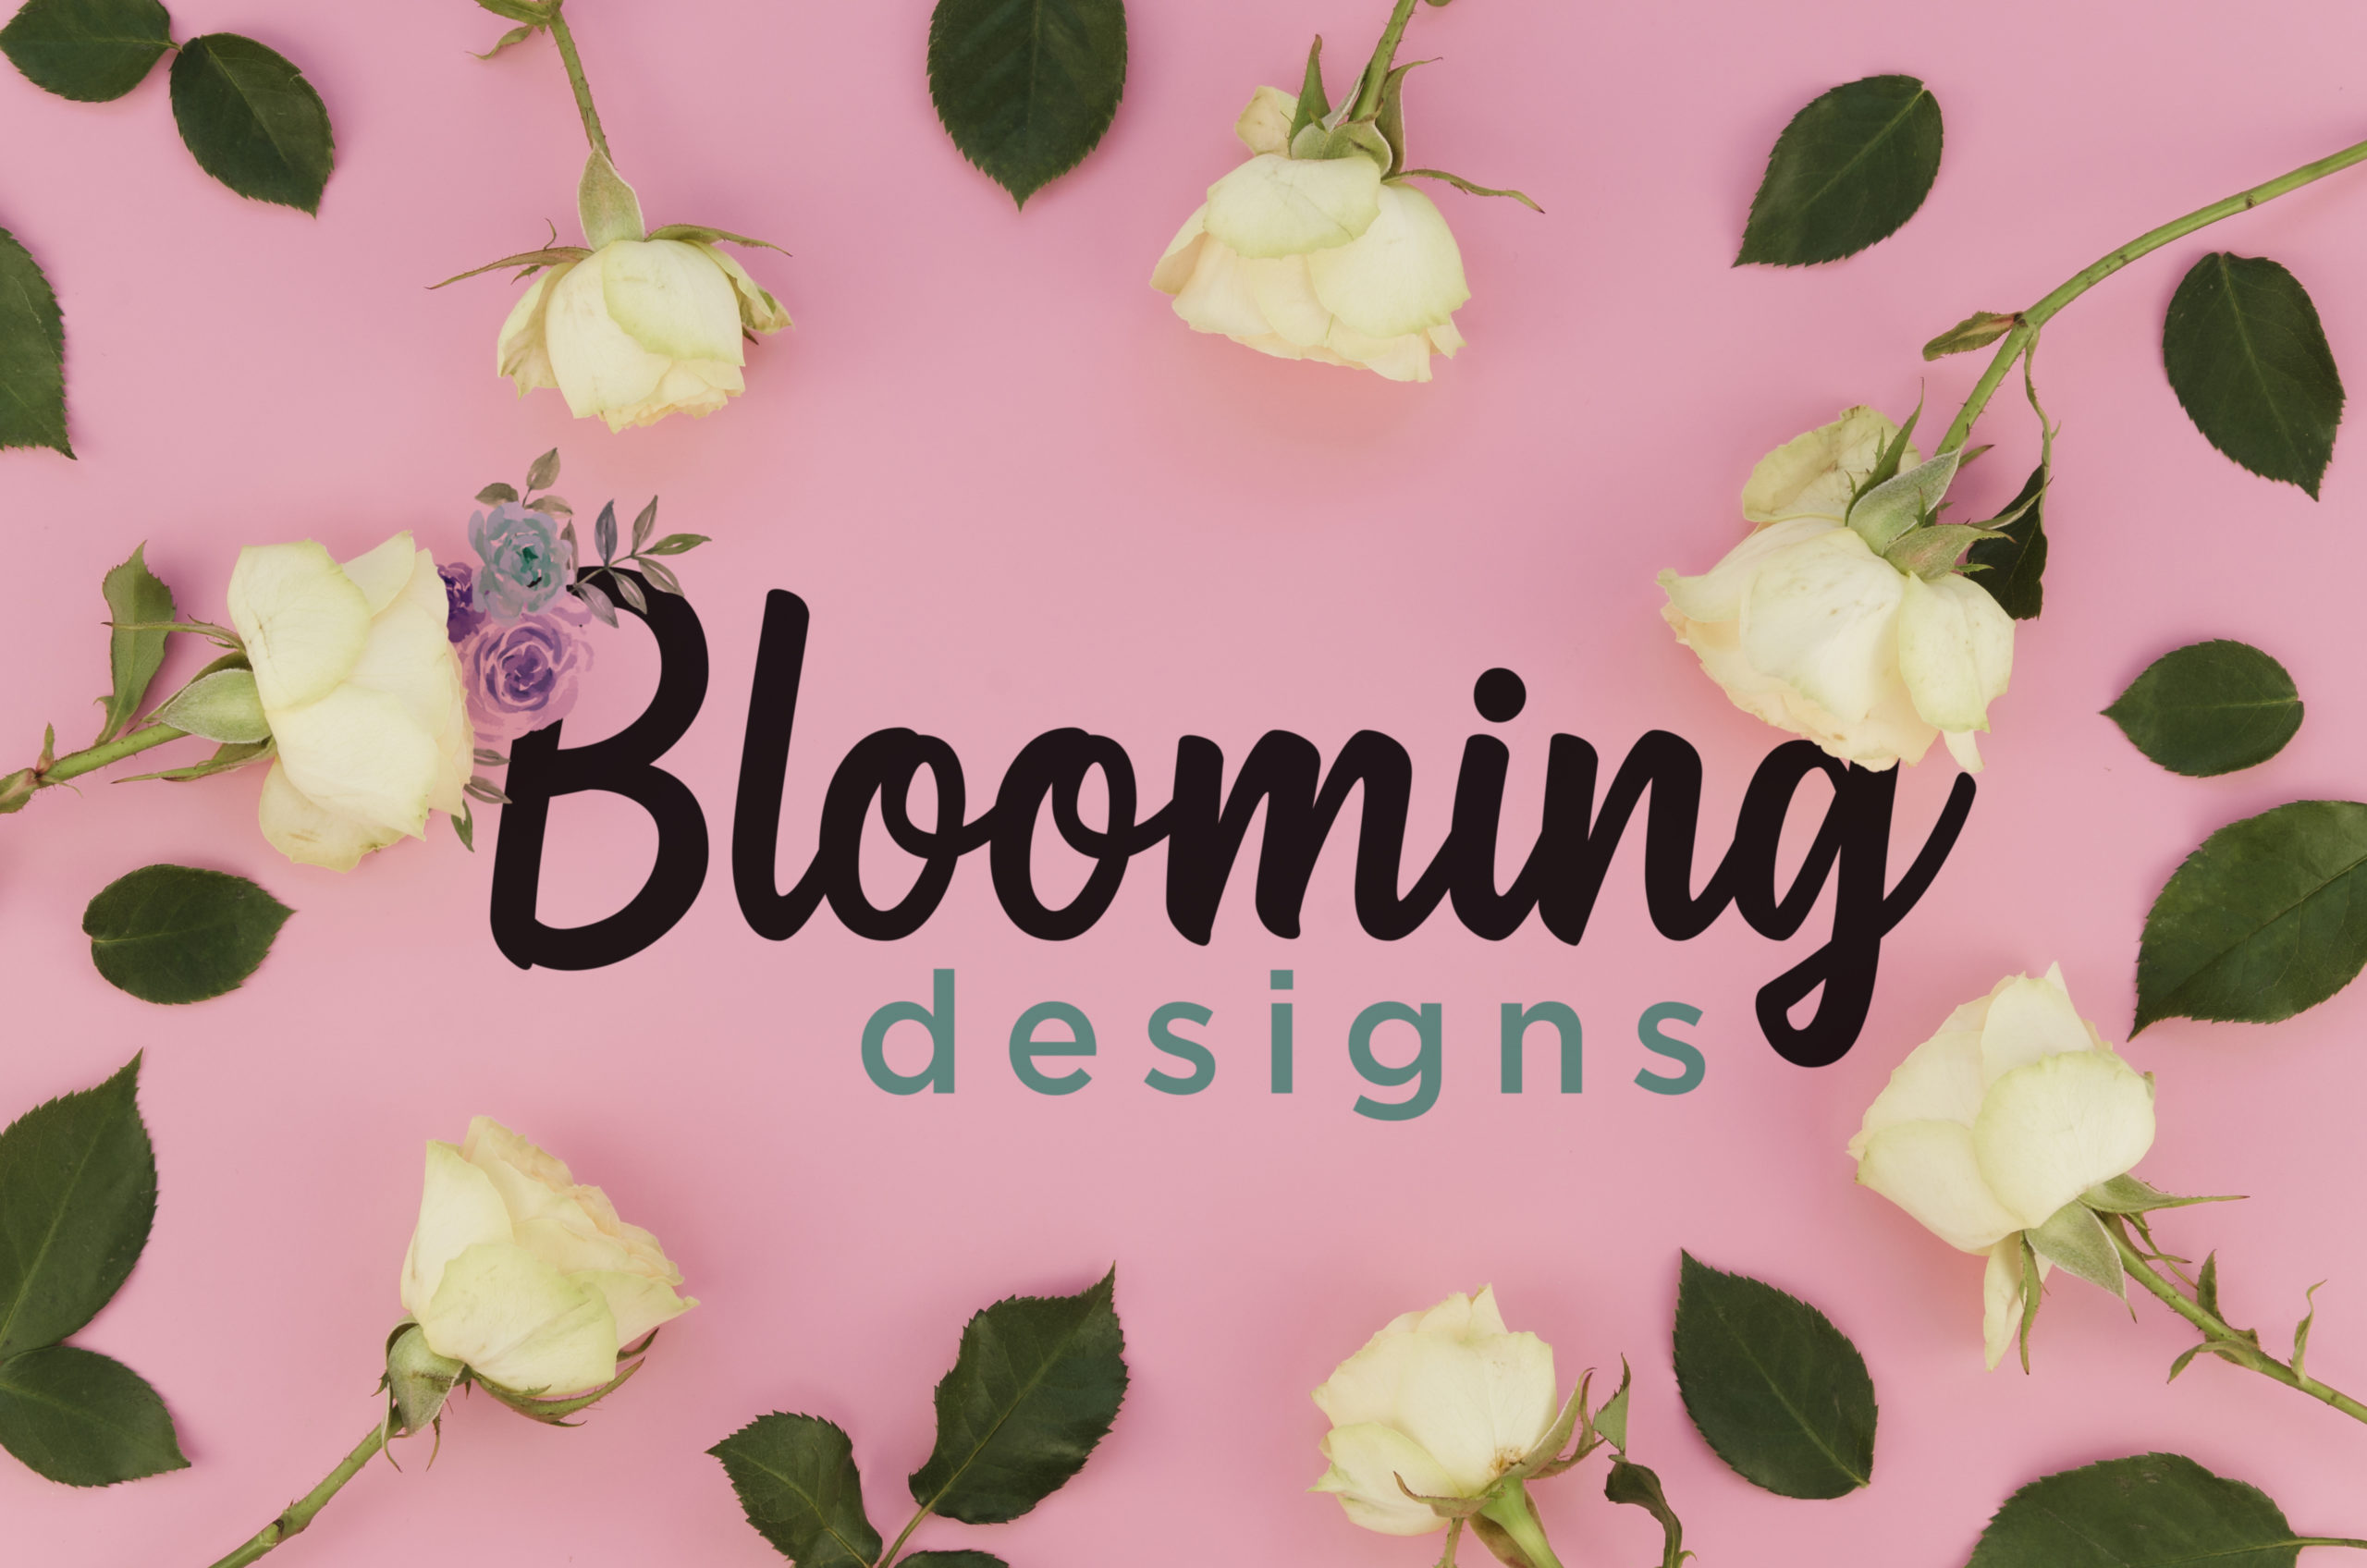 Decorative image showcasing the brand logo mixed with flowers